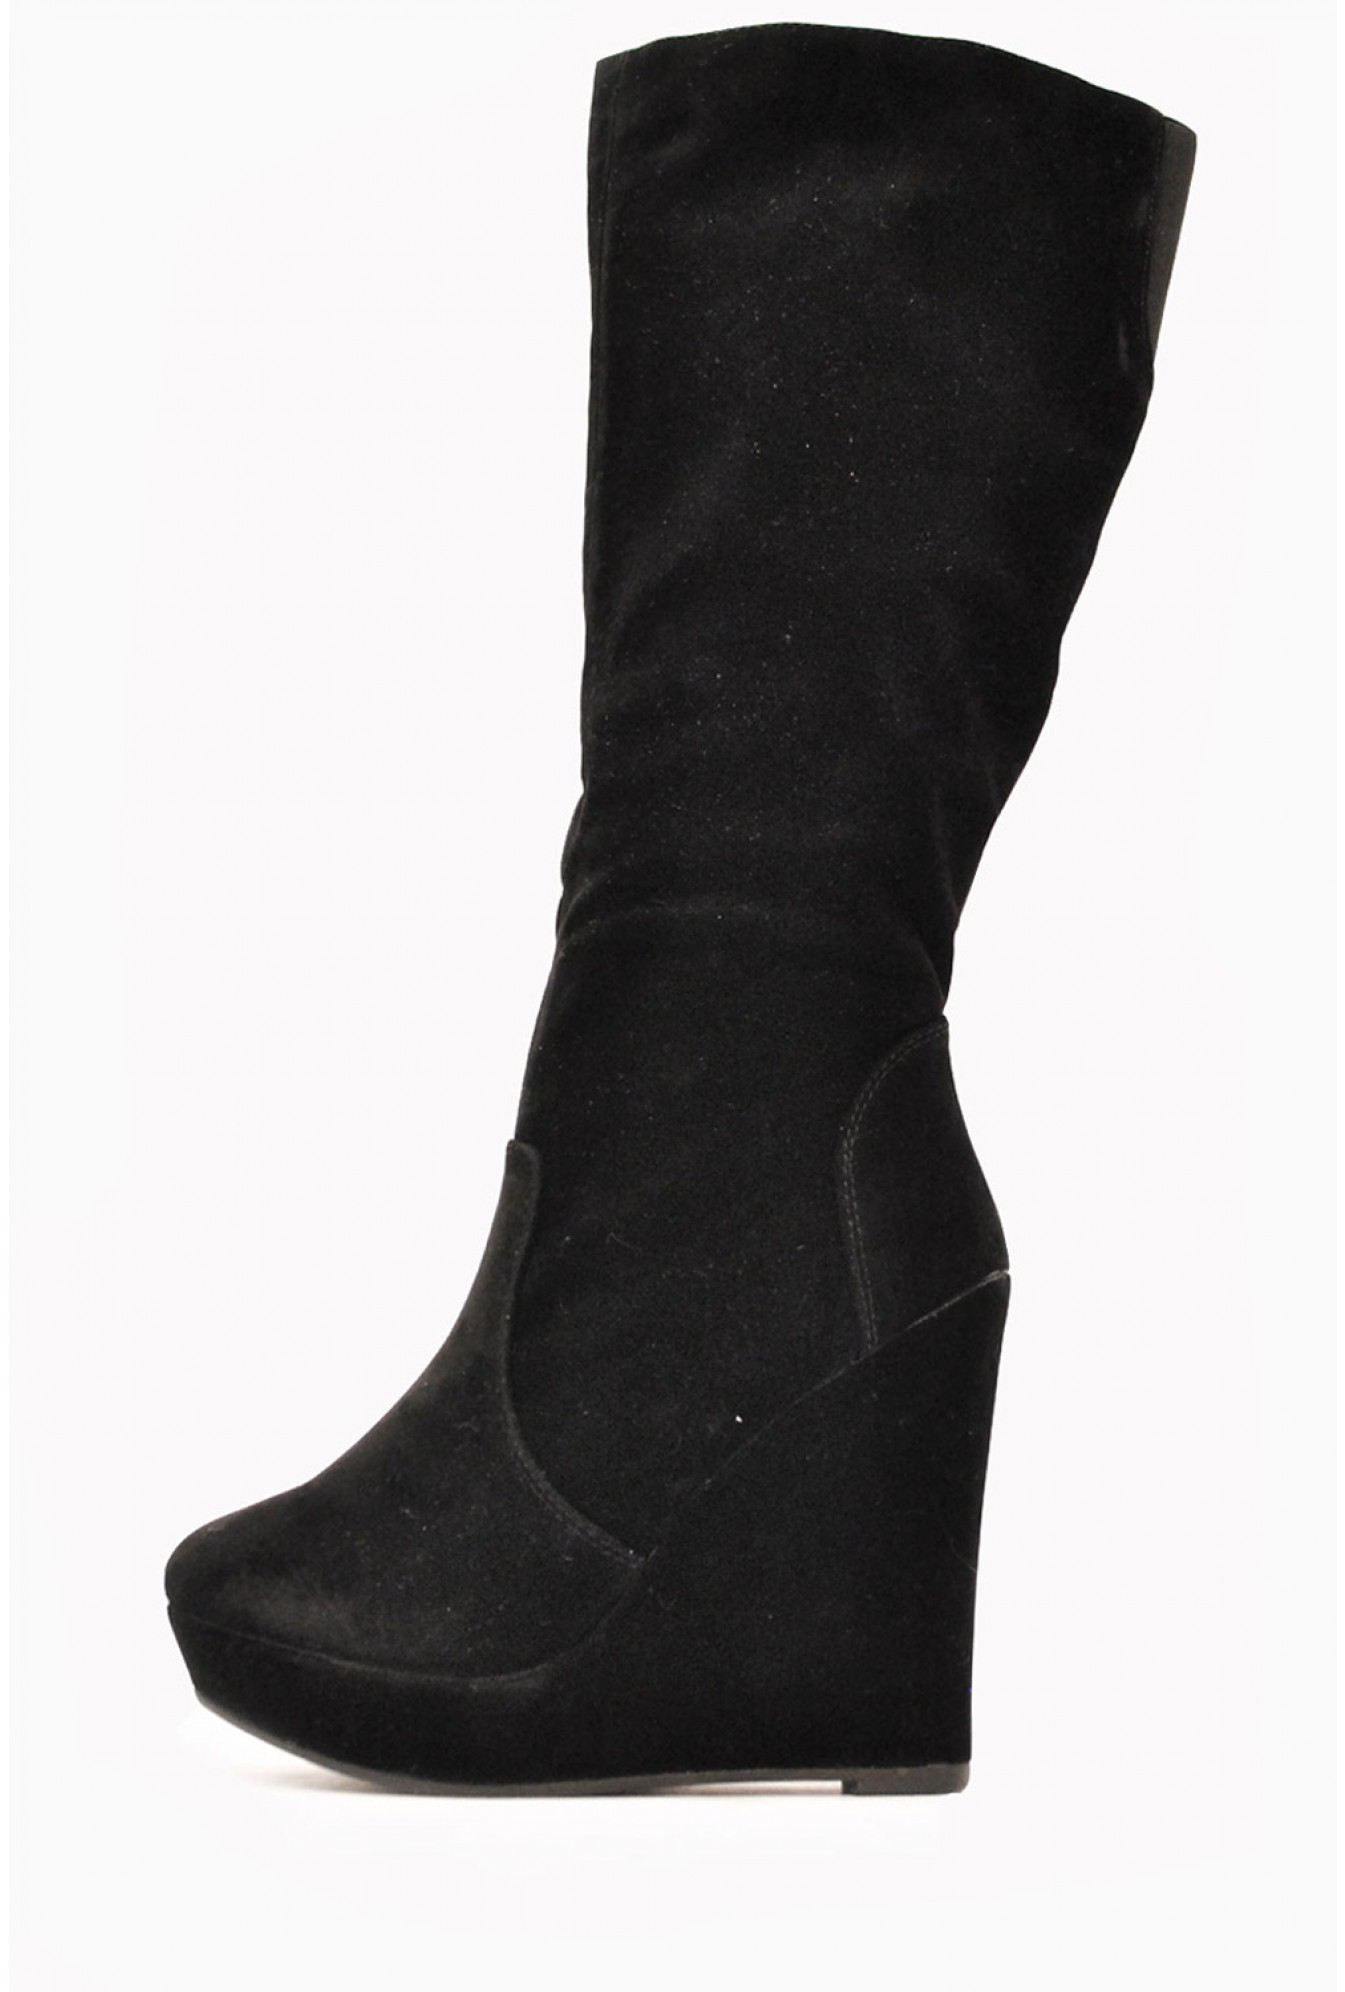 b66913645c05 247 Leslie Knee High Platform Wedge Boots | iCLOTHING